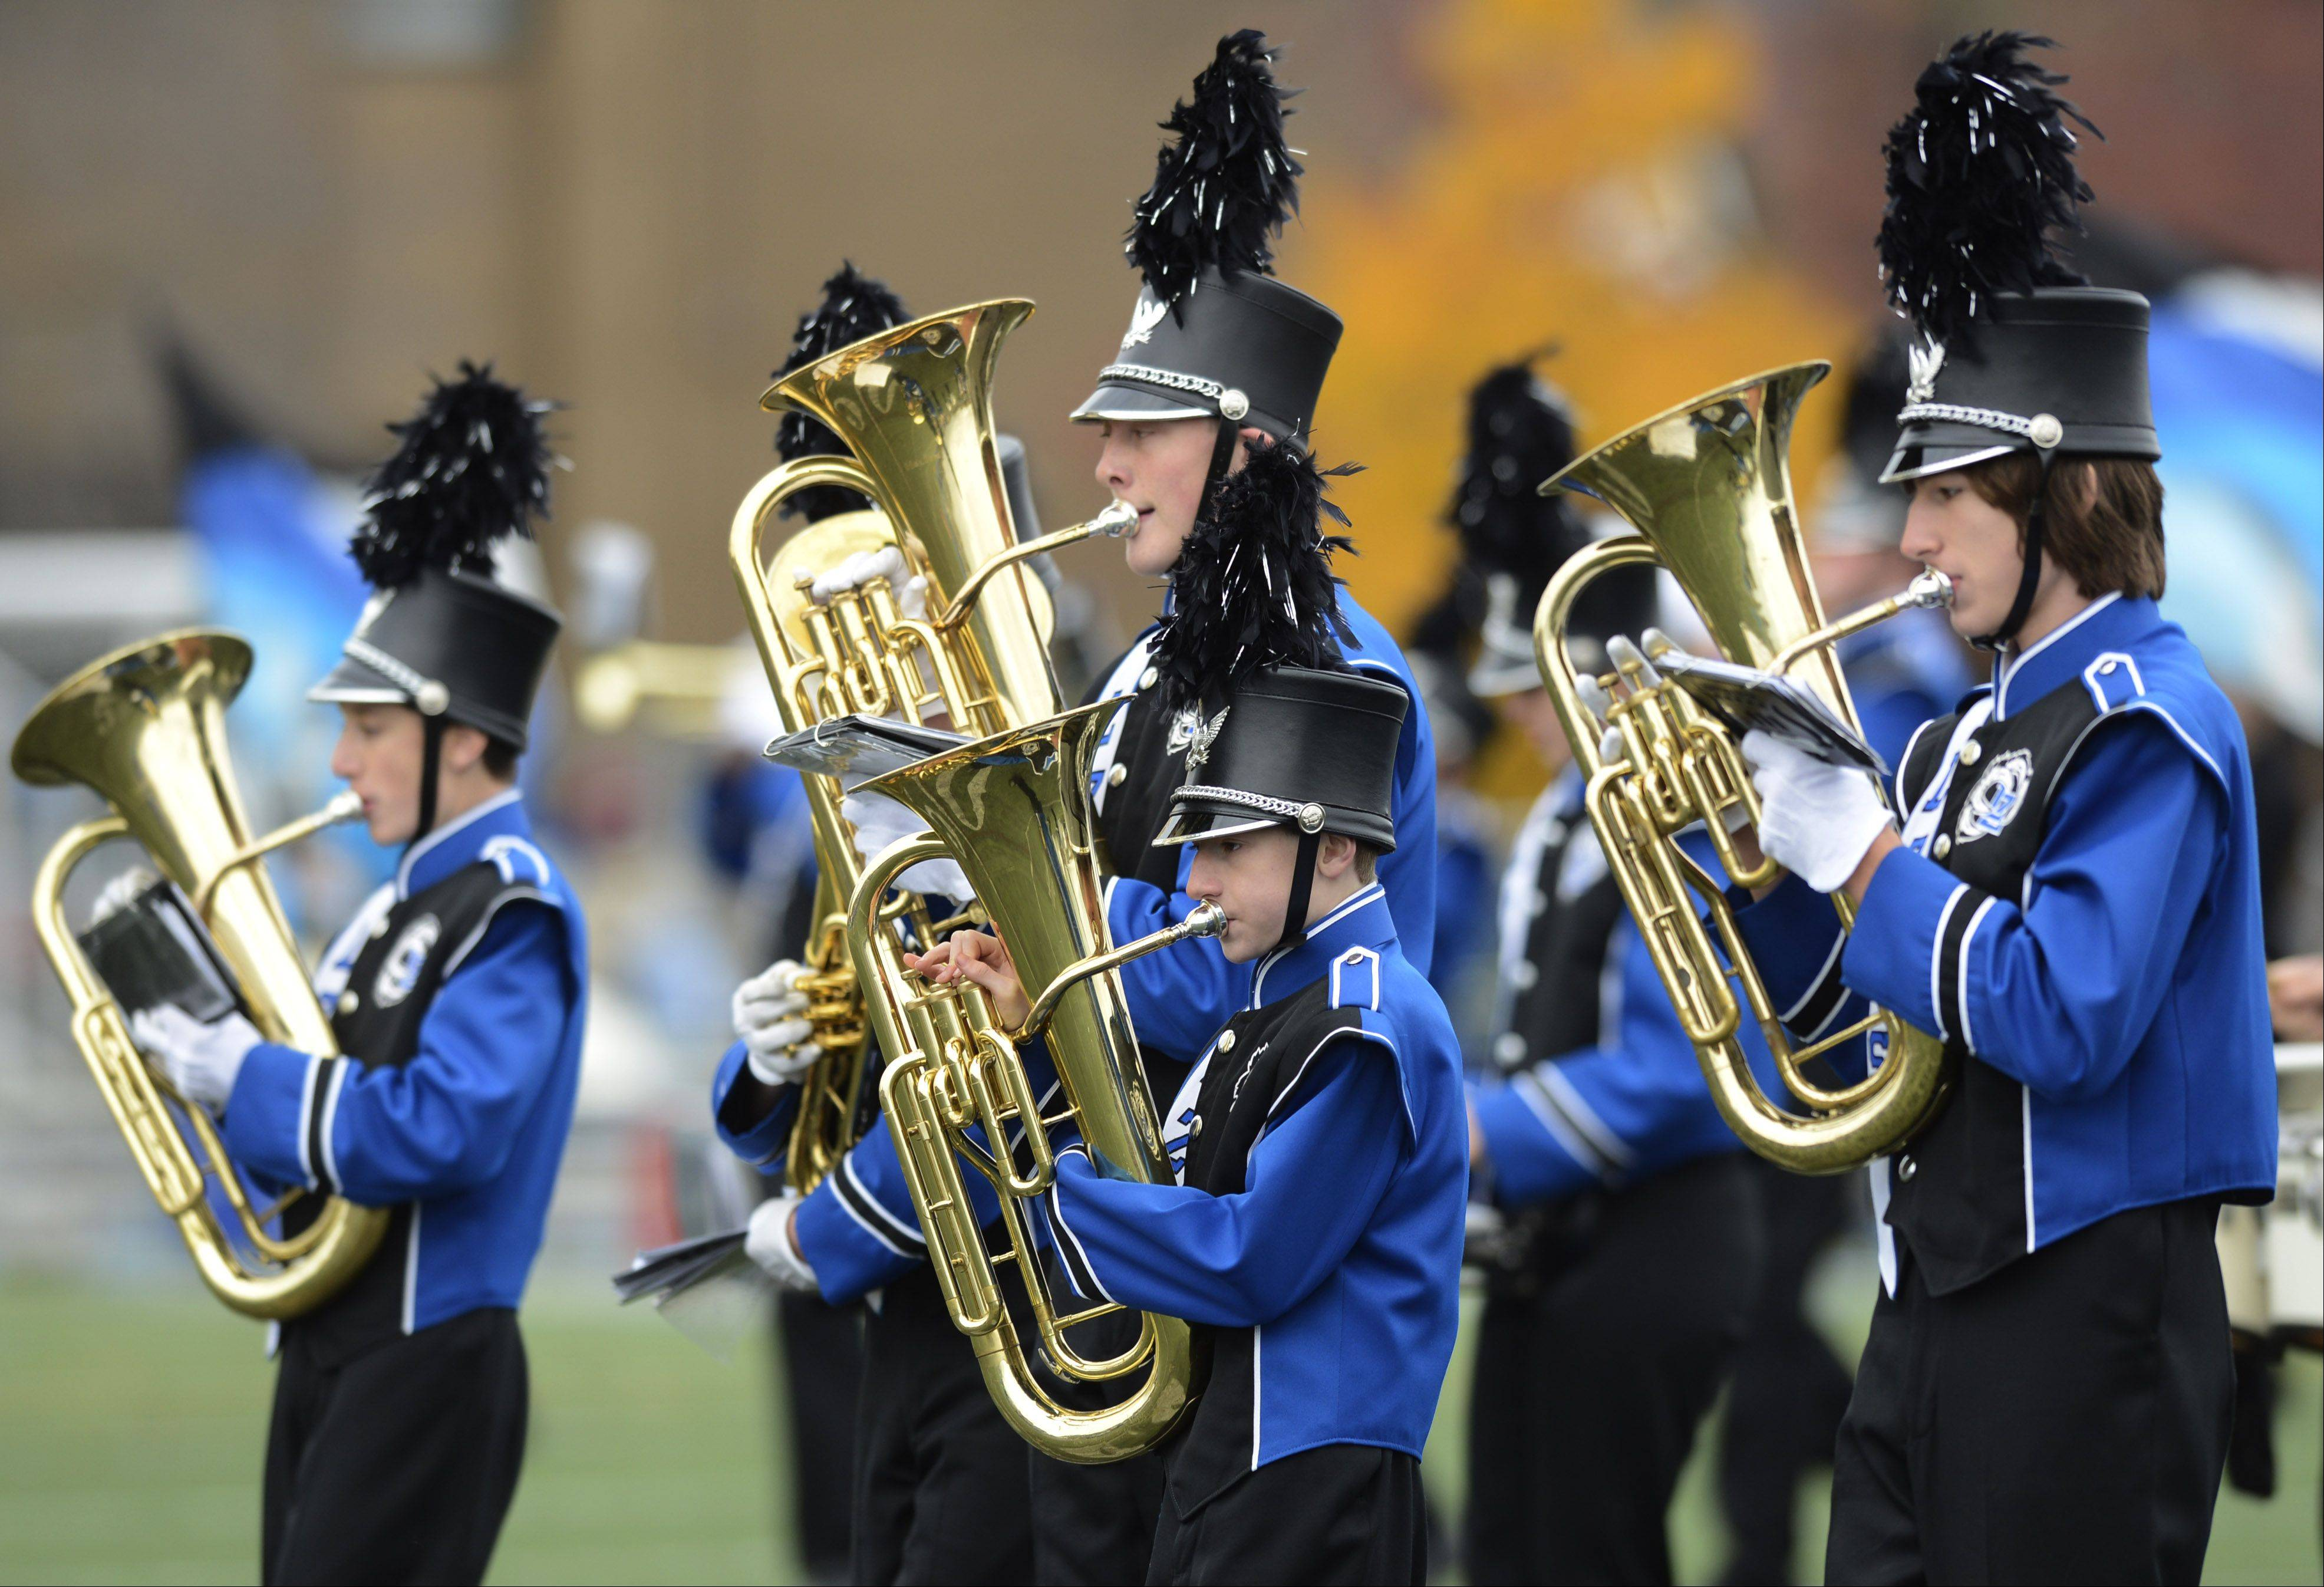 The Lake Zurich High School band will perform in the McDonald's Thanksgiving Day Parade.